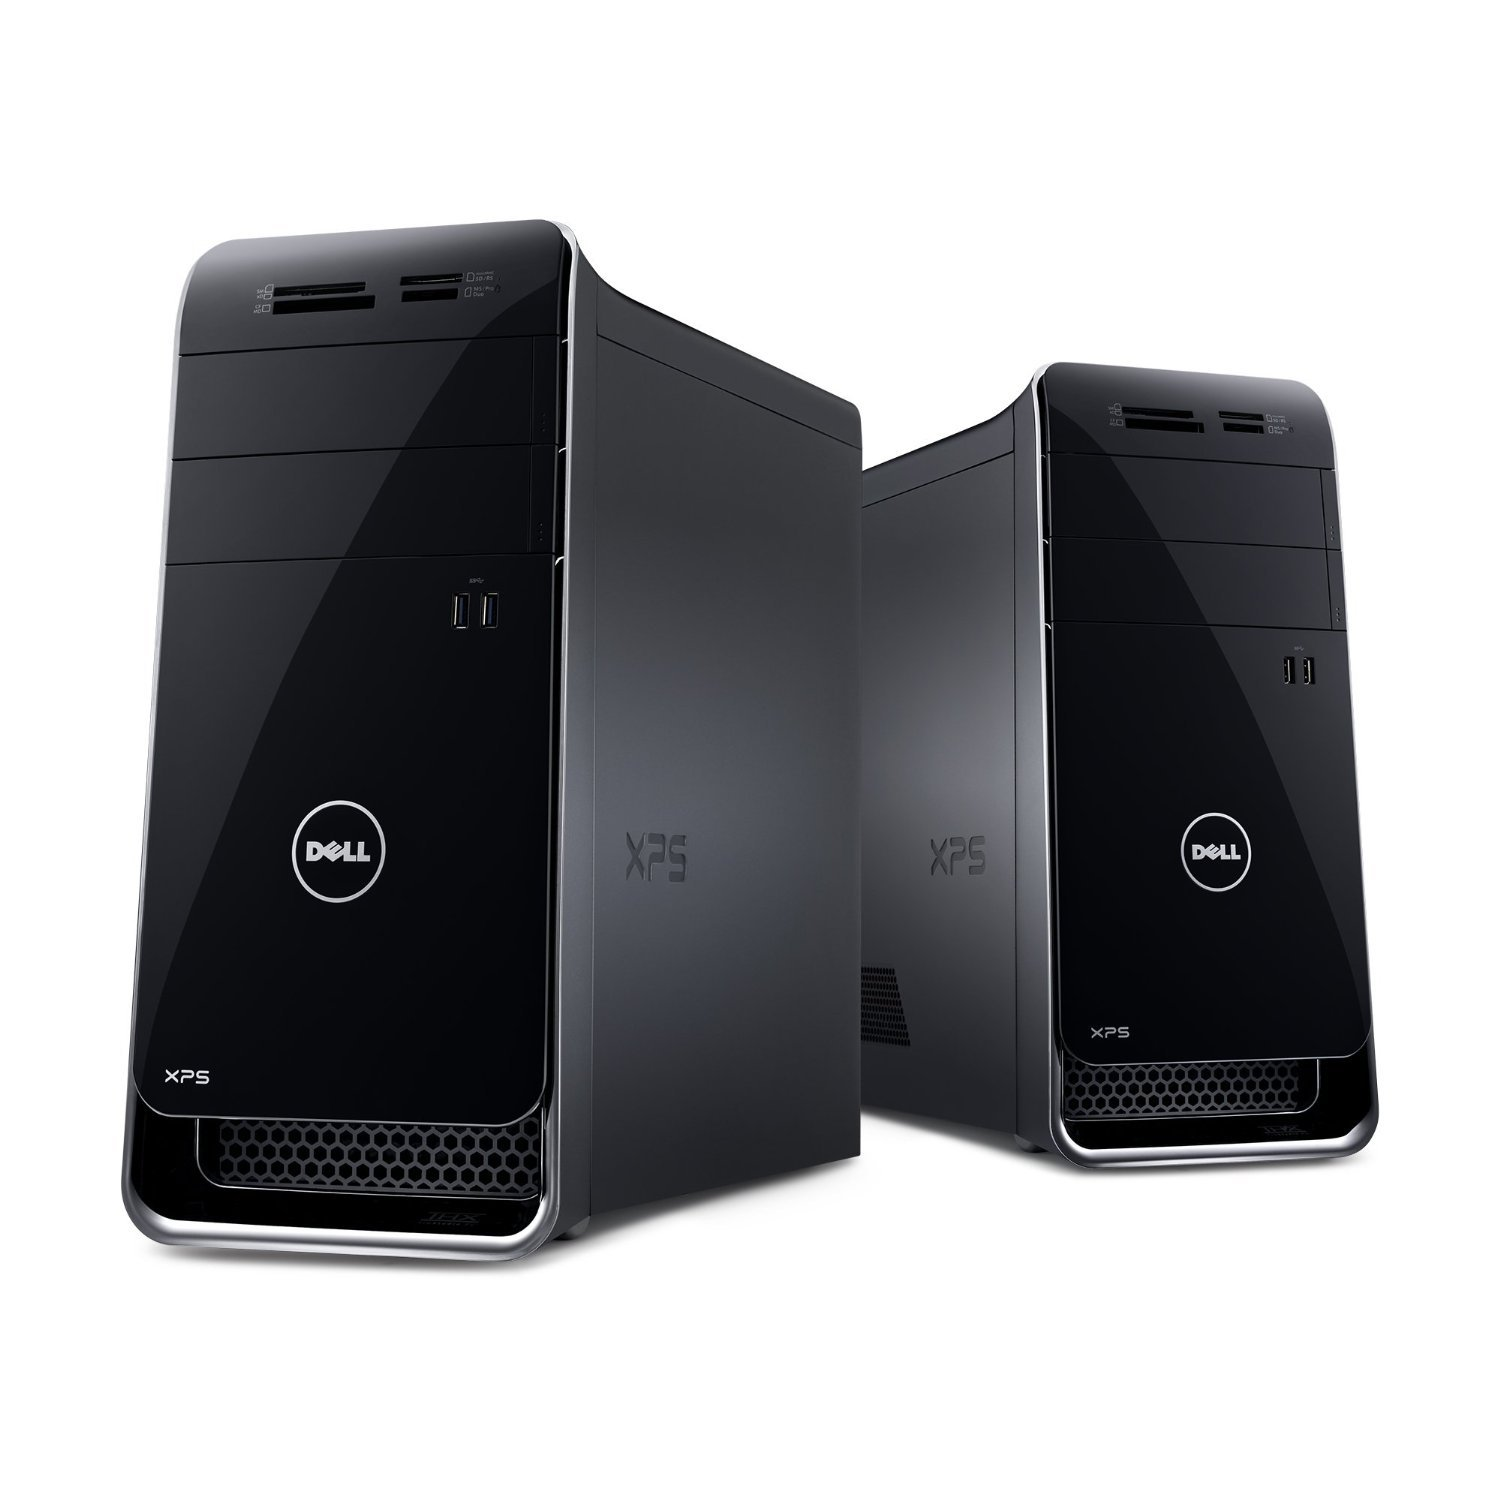 Dell XPS 8700 Desktop - Intel Quad Core i7-4770 Haswell up to 3.9 GHz Max Turbo Frequency, 32GB Memory, 1TB (1000GB) 7200RPM HDD, nVIDIA GeForce GTX 760 2GB ...